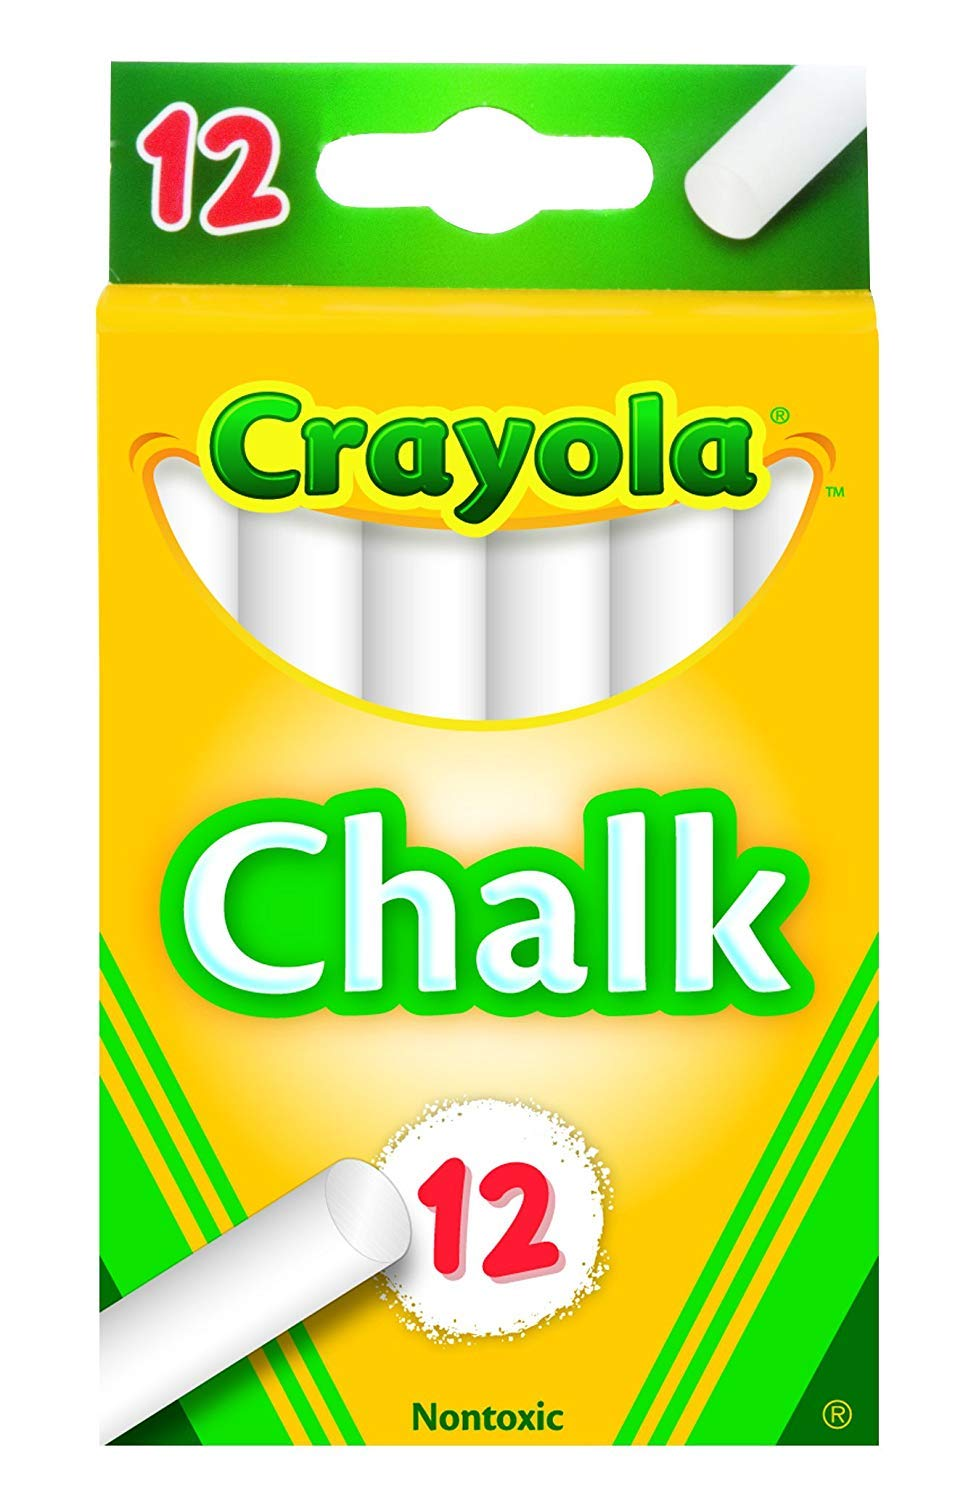 Crayola White Chalk 12 Each (51-0320) 1 White 12 pack Perfect for teaching